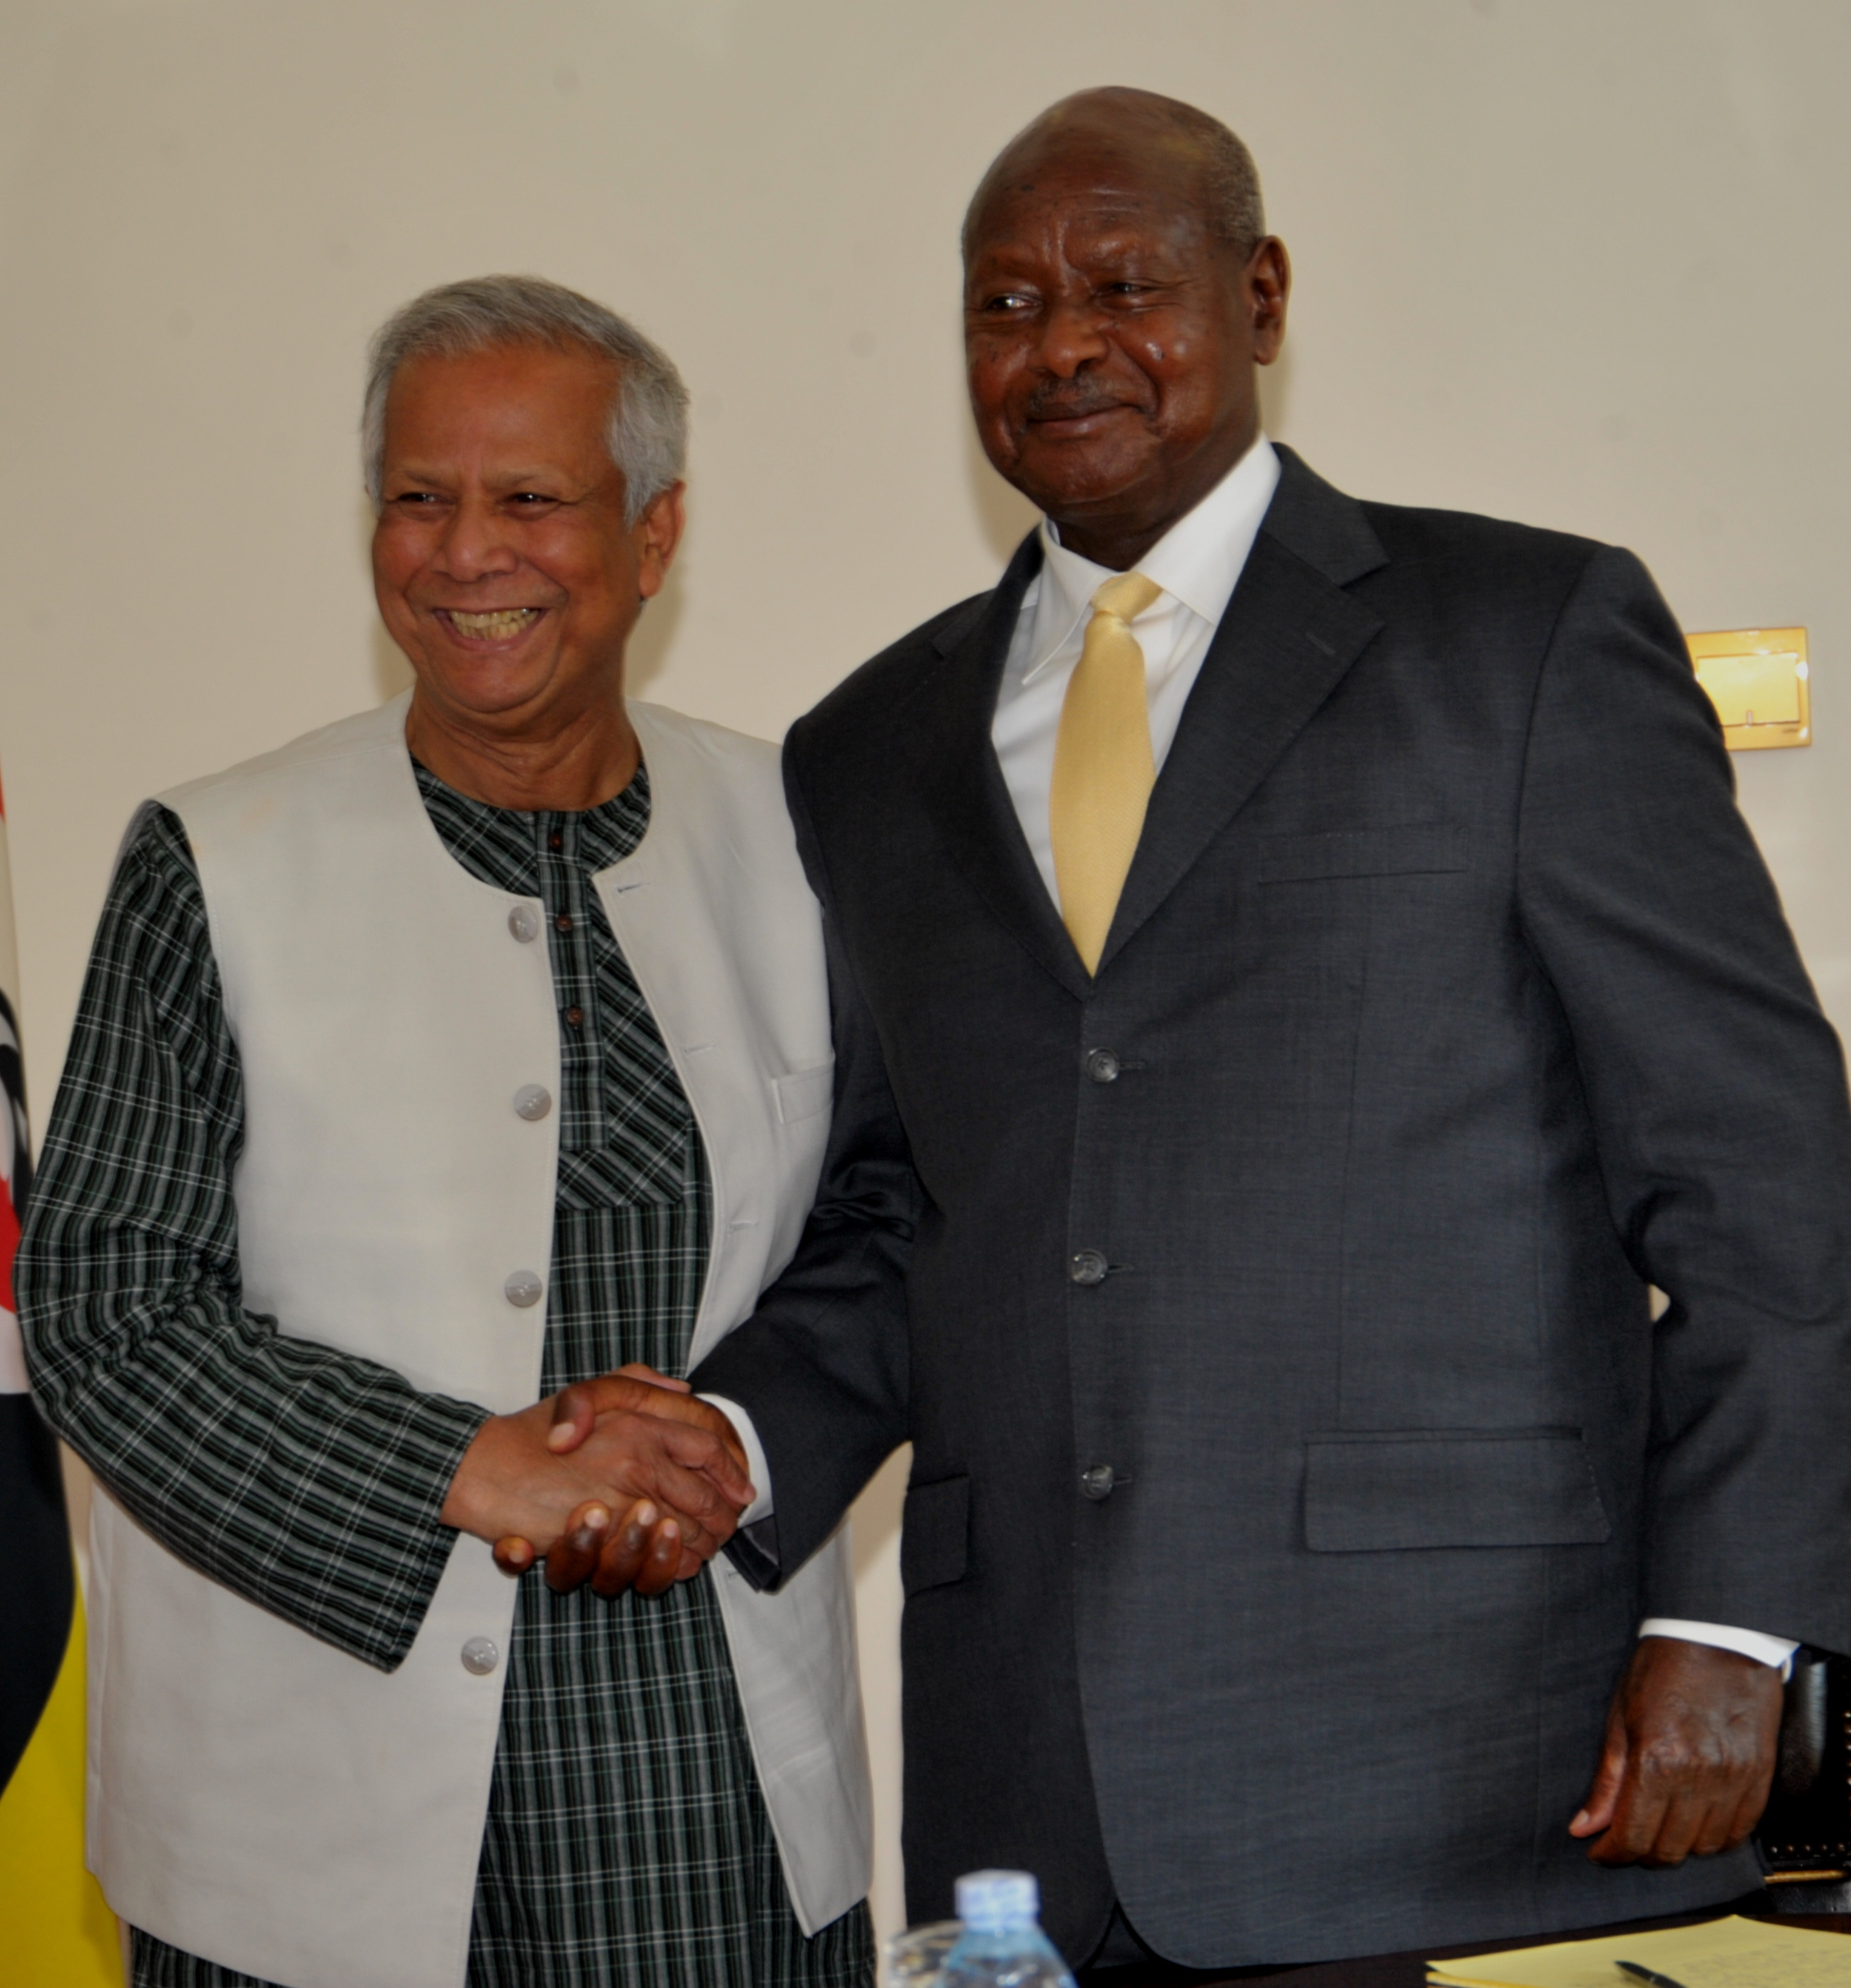 President Museveni  held a meeting with Prof.Muhammad Yunus, a Bangladeshi 2006 joint Nobel Peace Laureate.